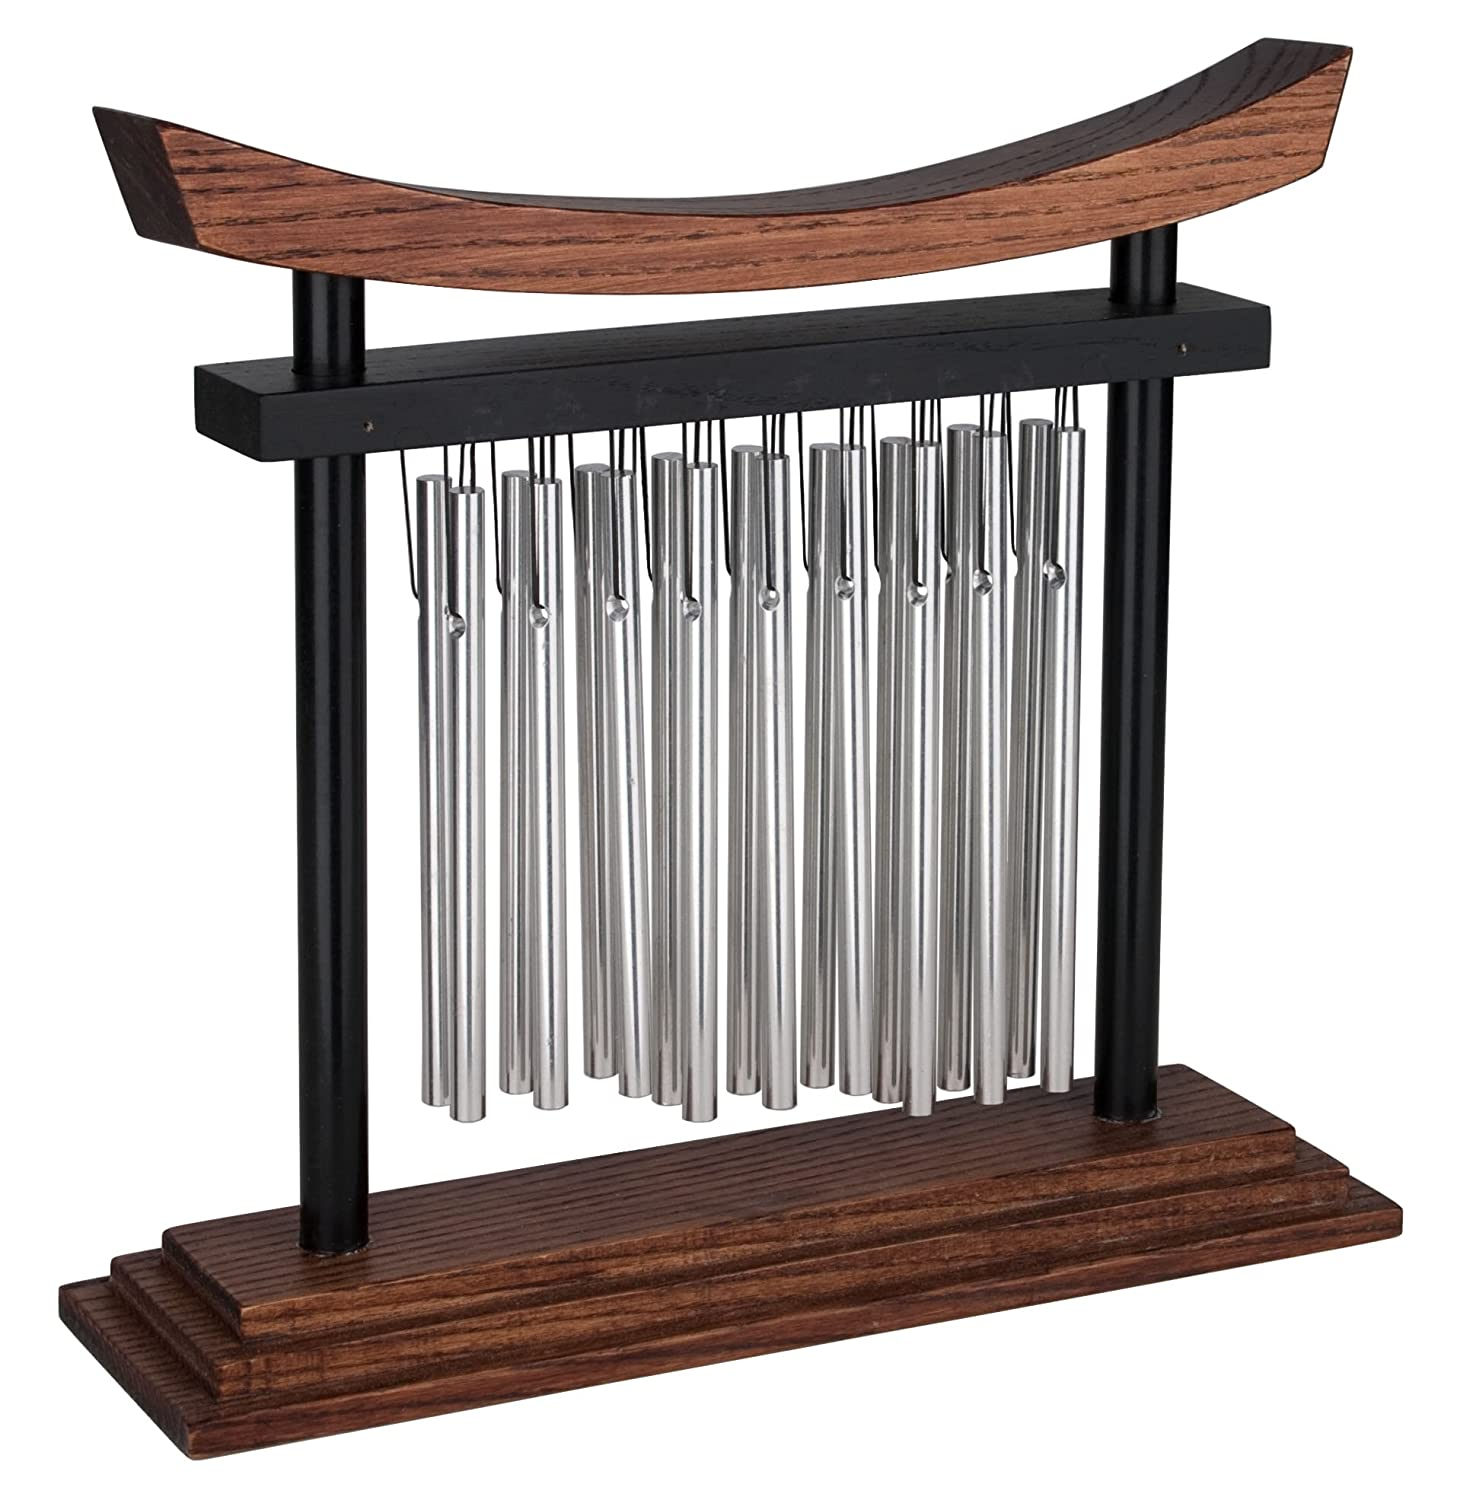 Woodstock Chimes Tranquility Table Chime, 9-Inch Tall by 10-Inch Wide TTC